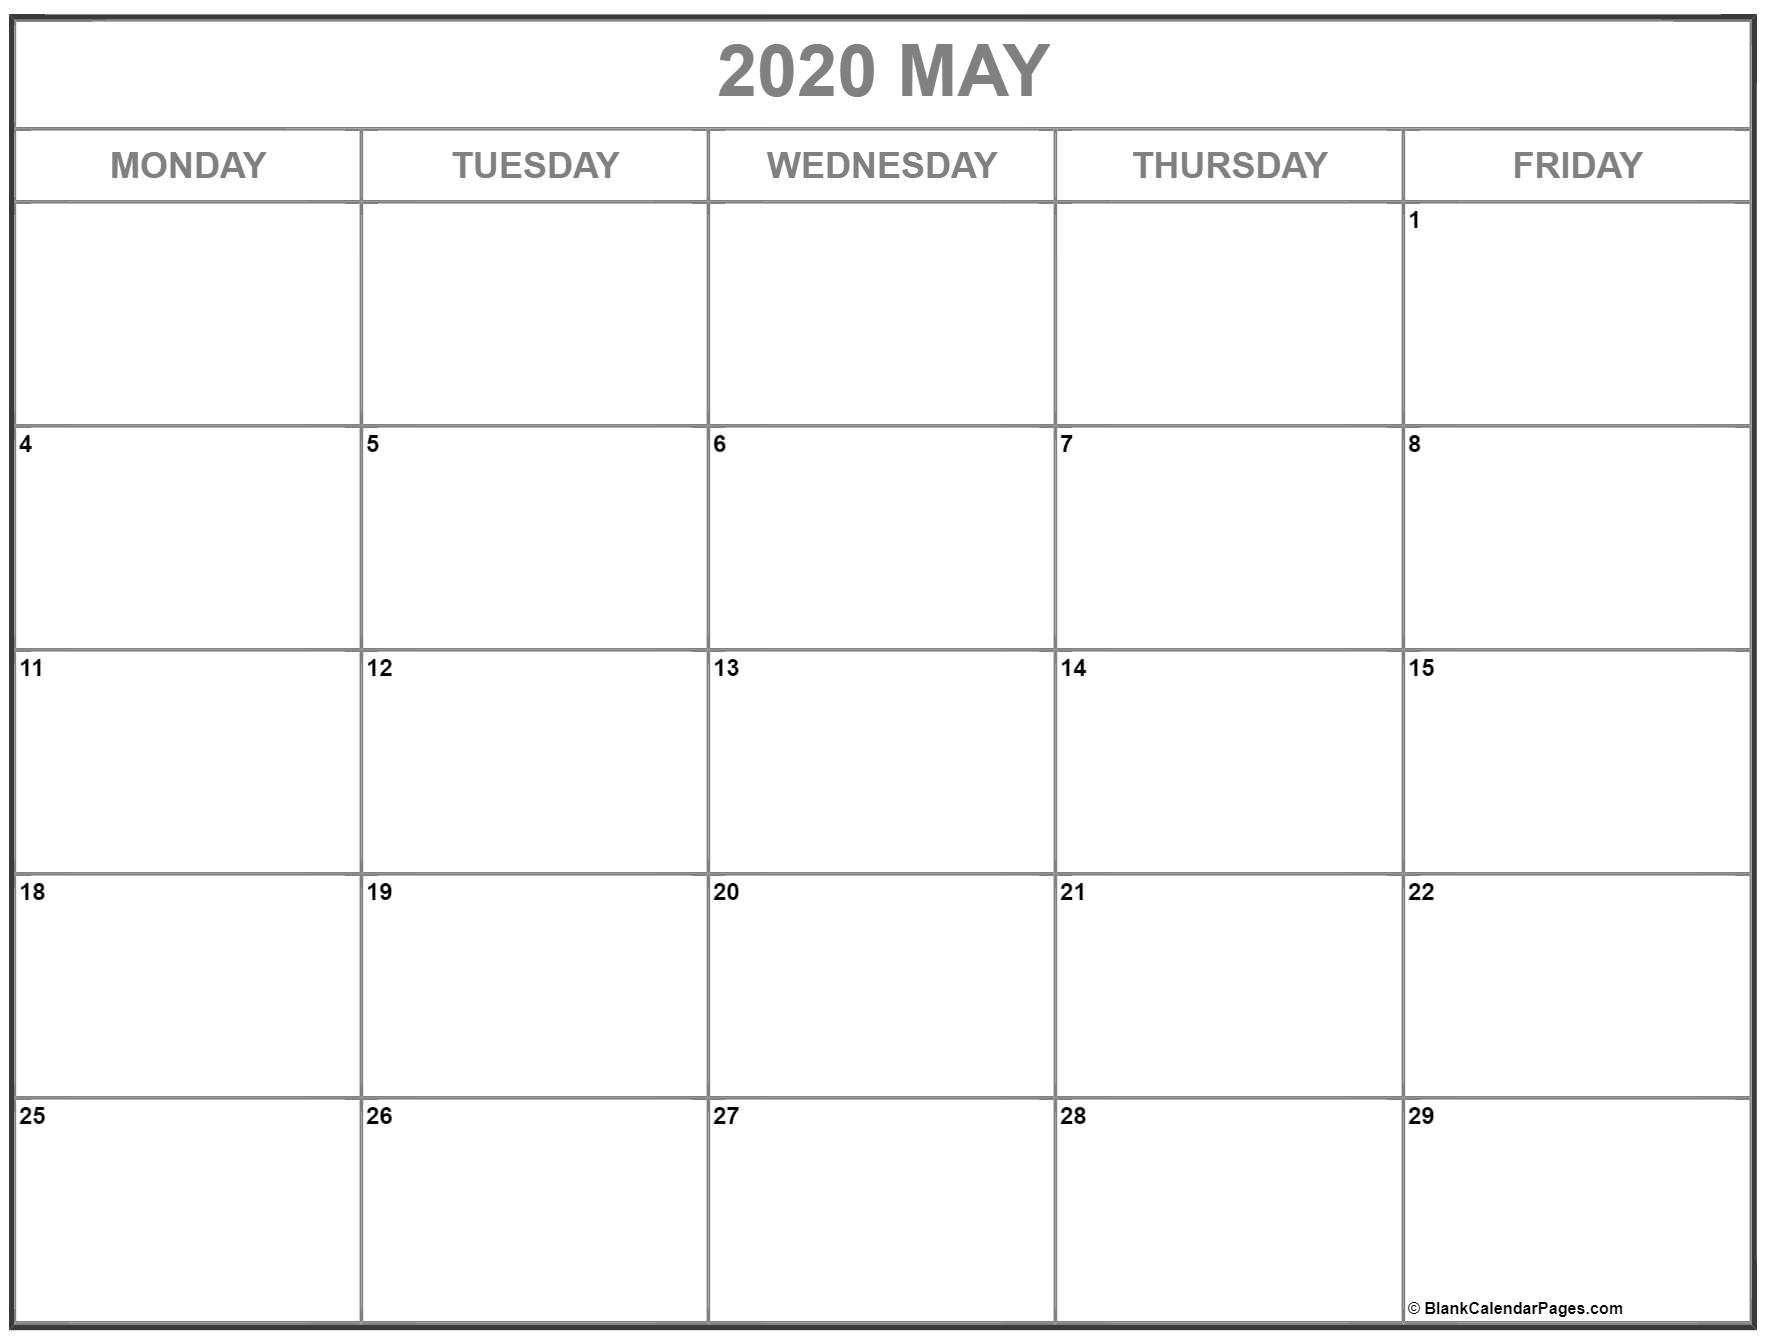 May 2020 Monday Calendar | Monday To Sunday intended for 2020 Monday To Sunday Calendar Printable